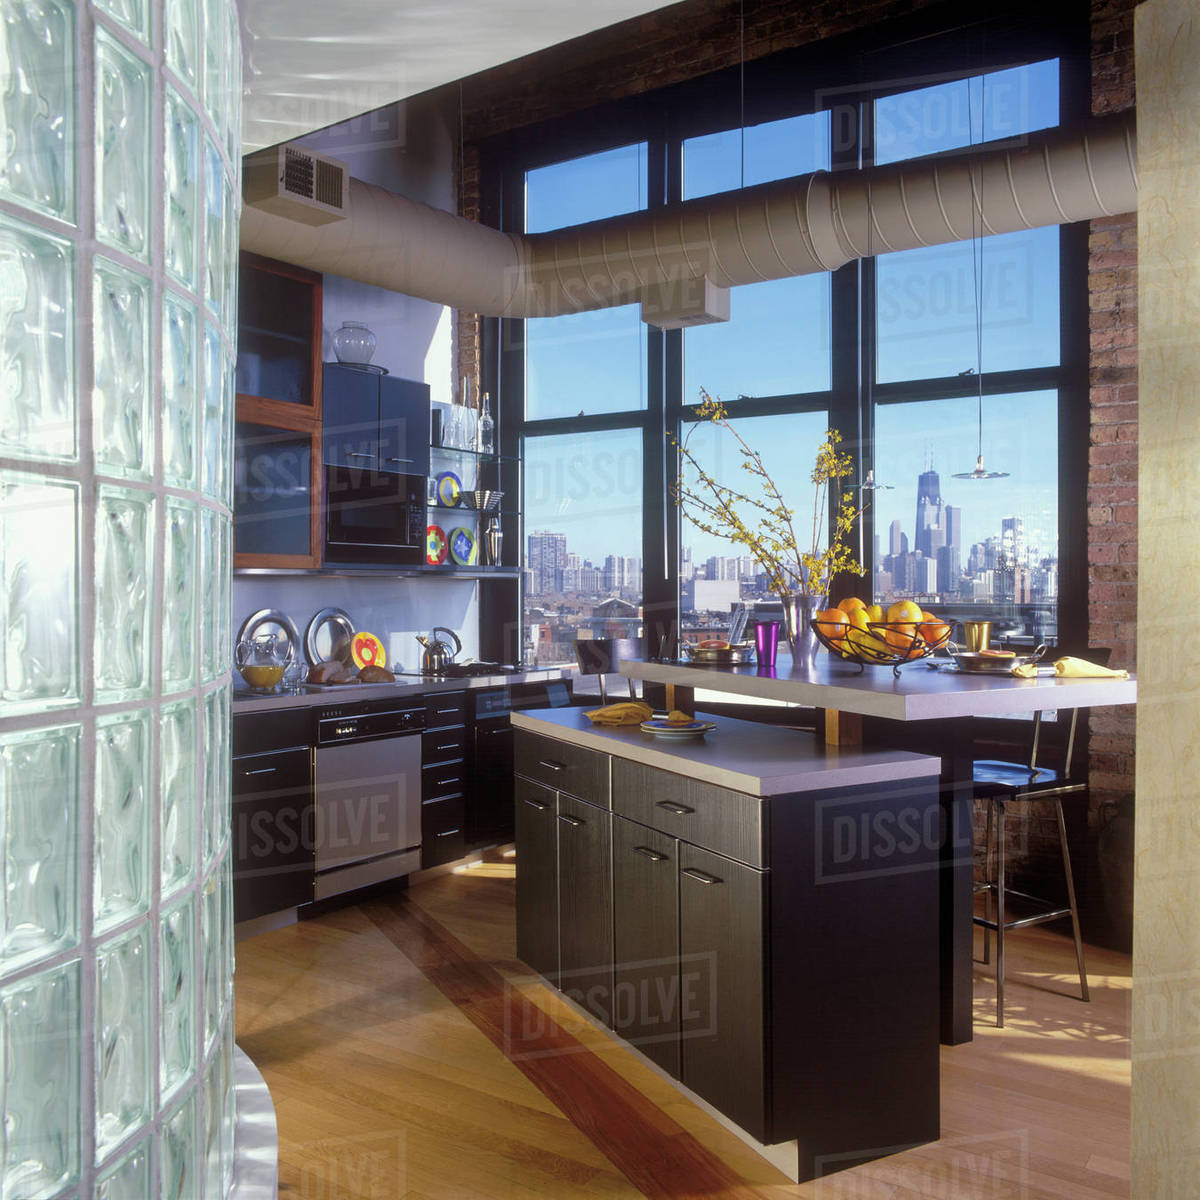 Delicieux Loft Kitchen, Chicago Skyline, Old Factory Building, Wood Floors, Black  Contemporary Cabinets, Open Duct Work, Forsythia,